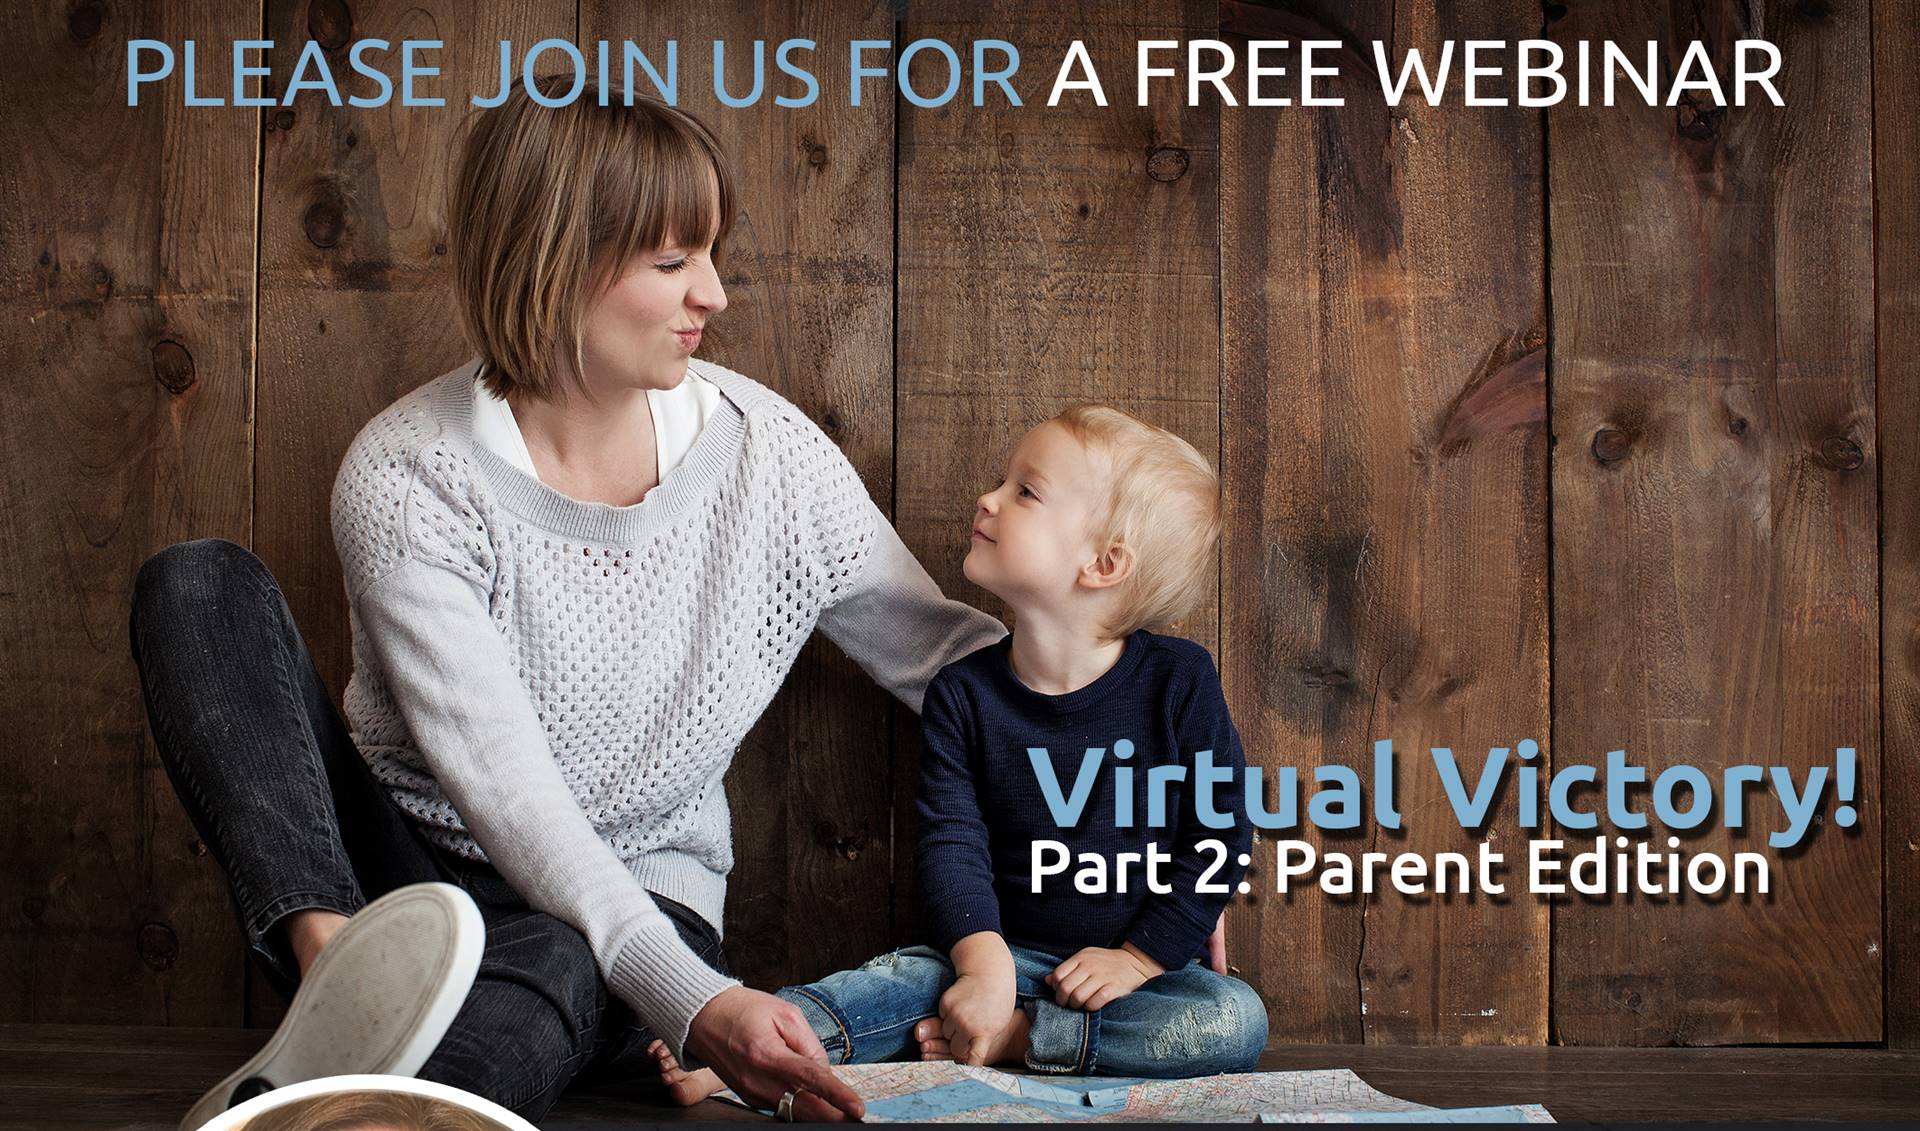 Image of Woman and Child. Virtual Victory Part 2: Parent Edition